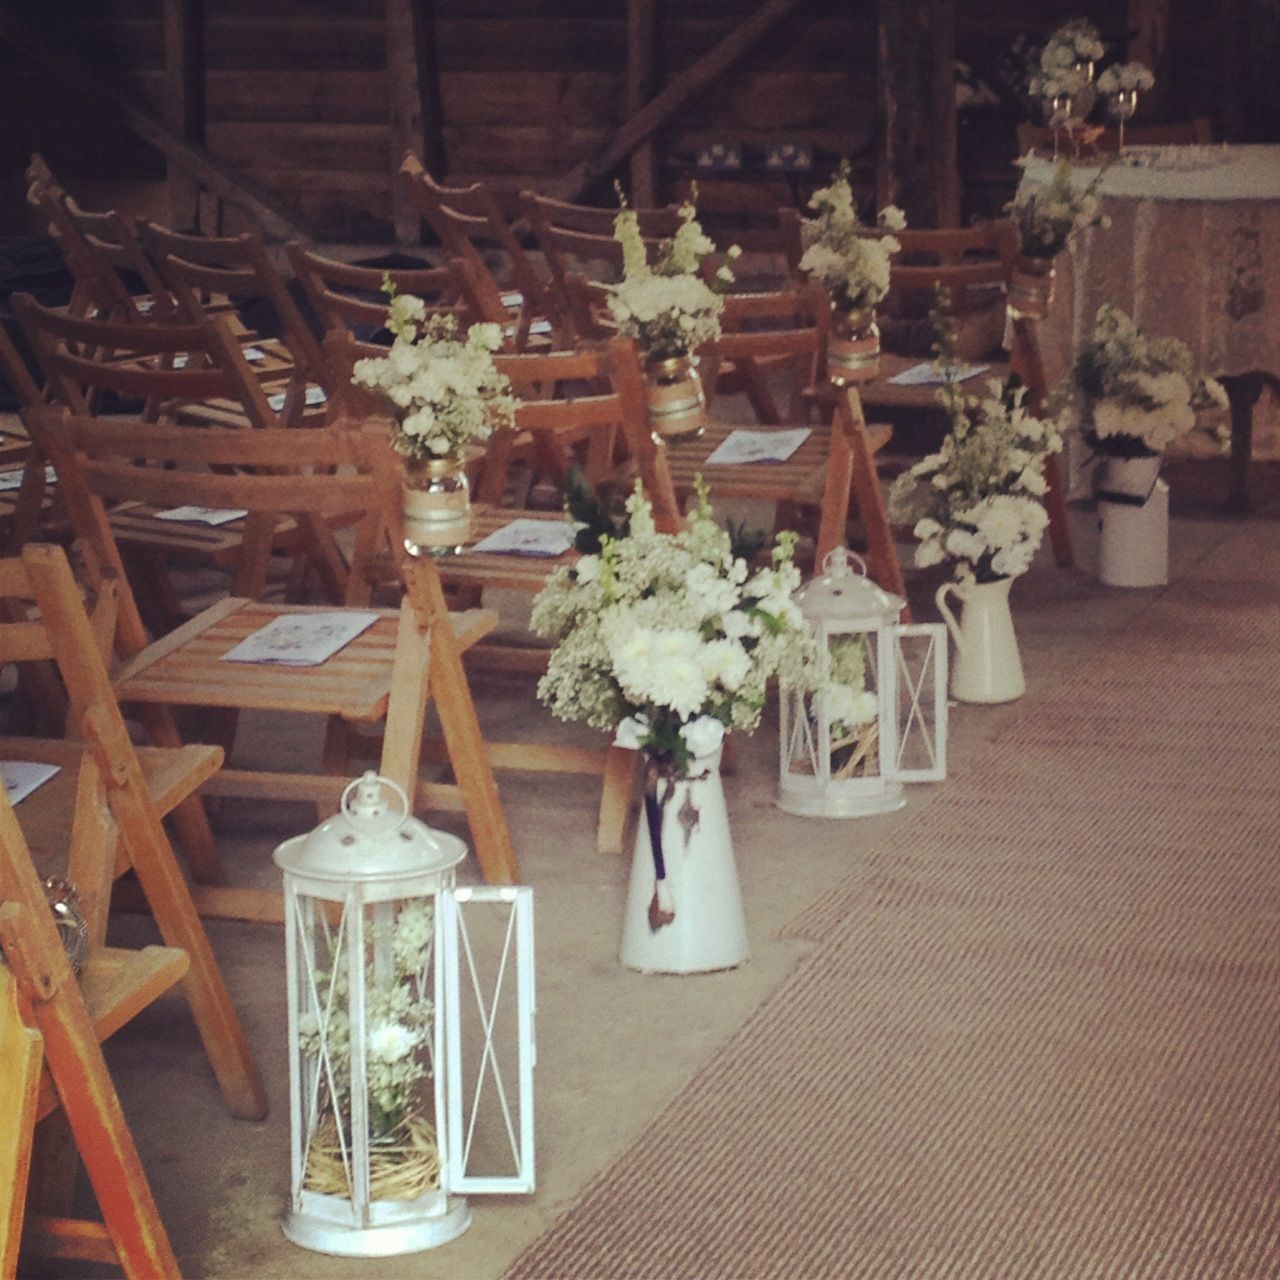 Wedding aisle decor different objects wedding ideas for Aisle wedding decoration ideas